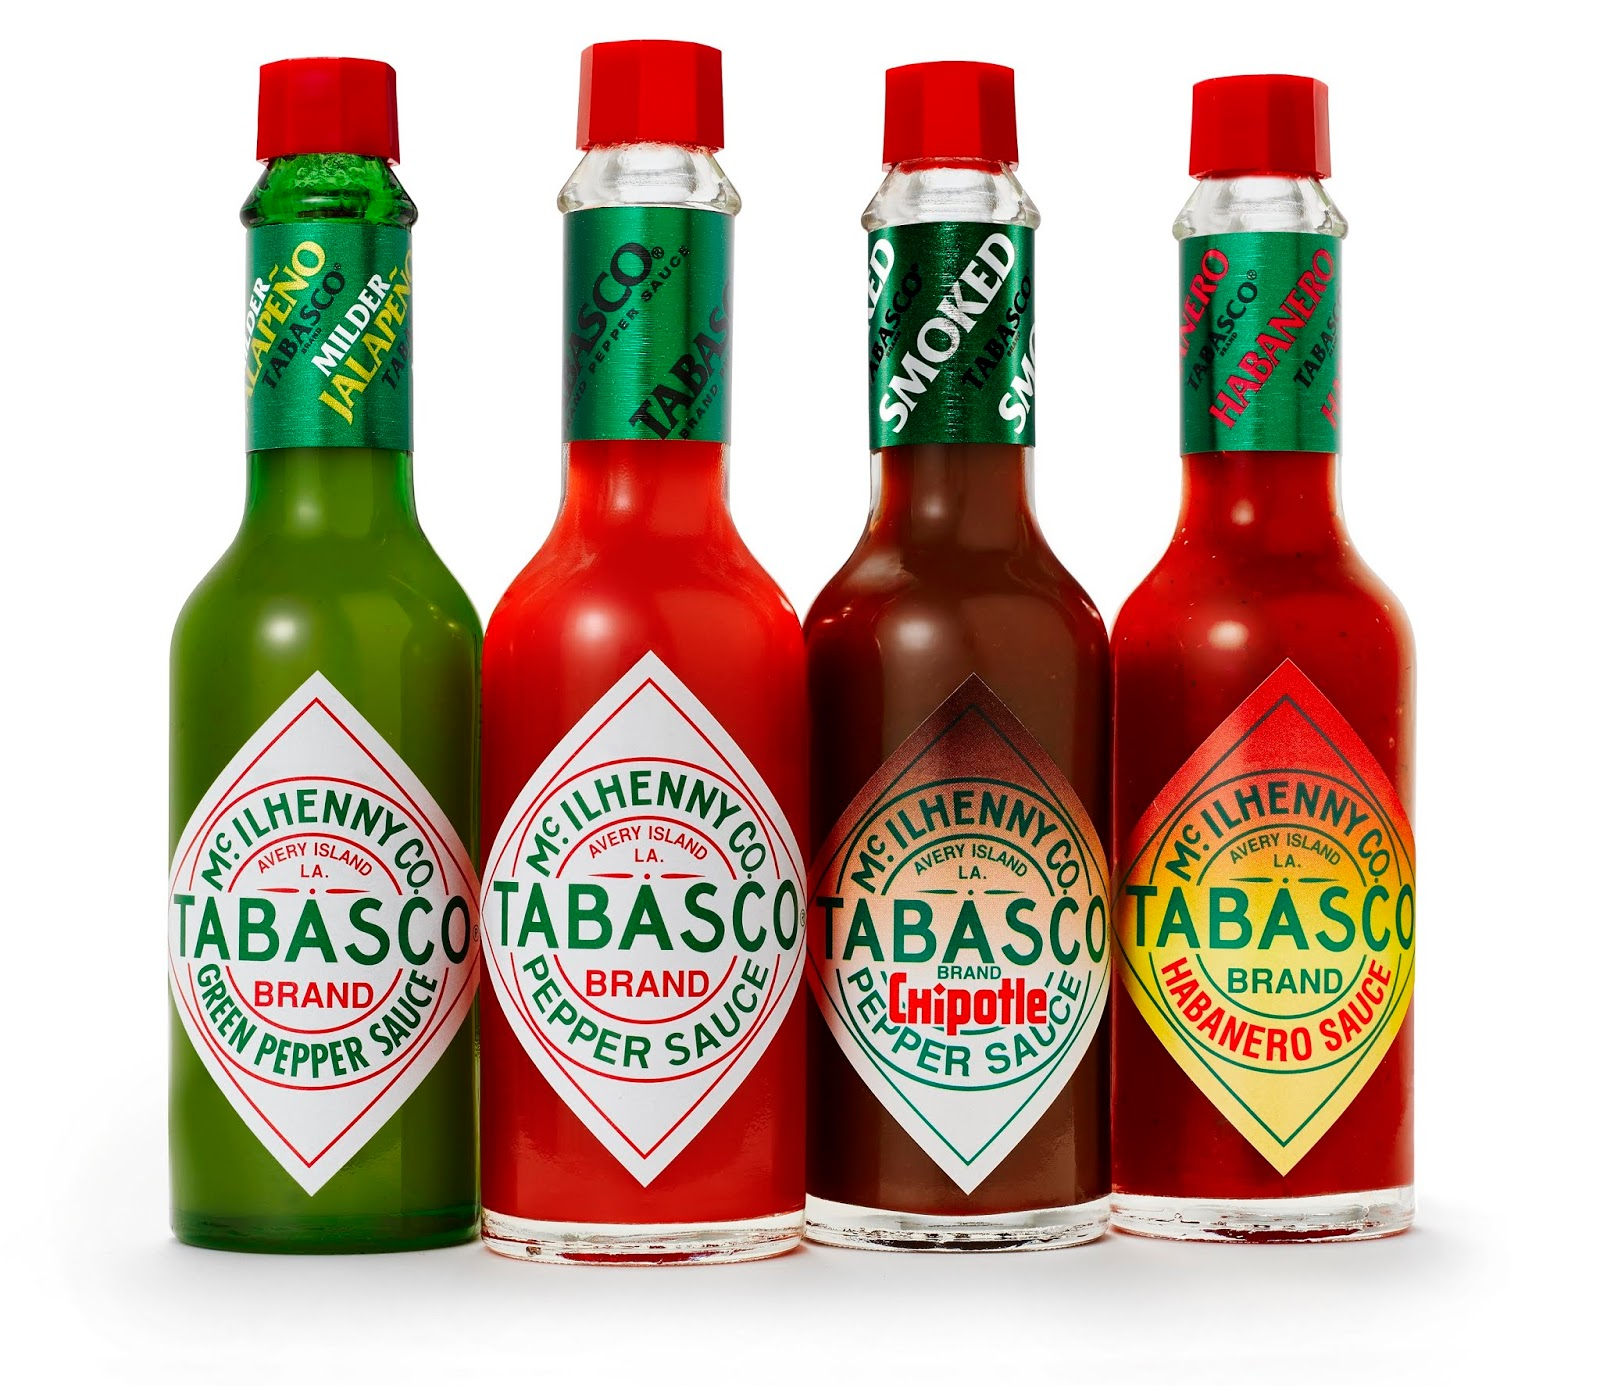 [Review] TABASCO Celebrates 150 Iconic Years